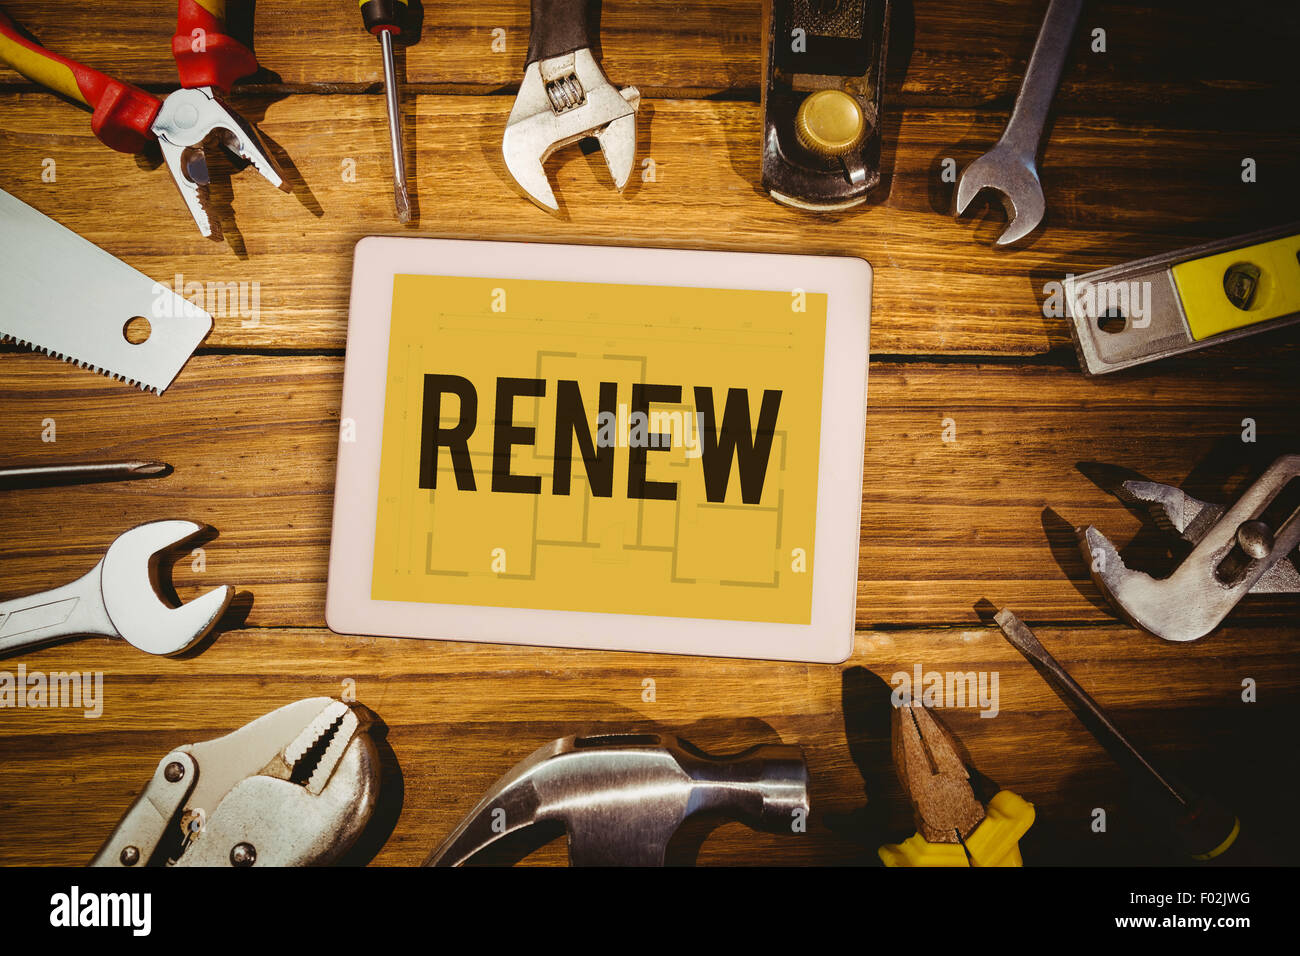 Renew against blueprint - Stock Image